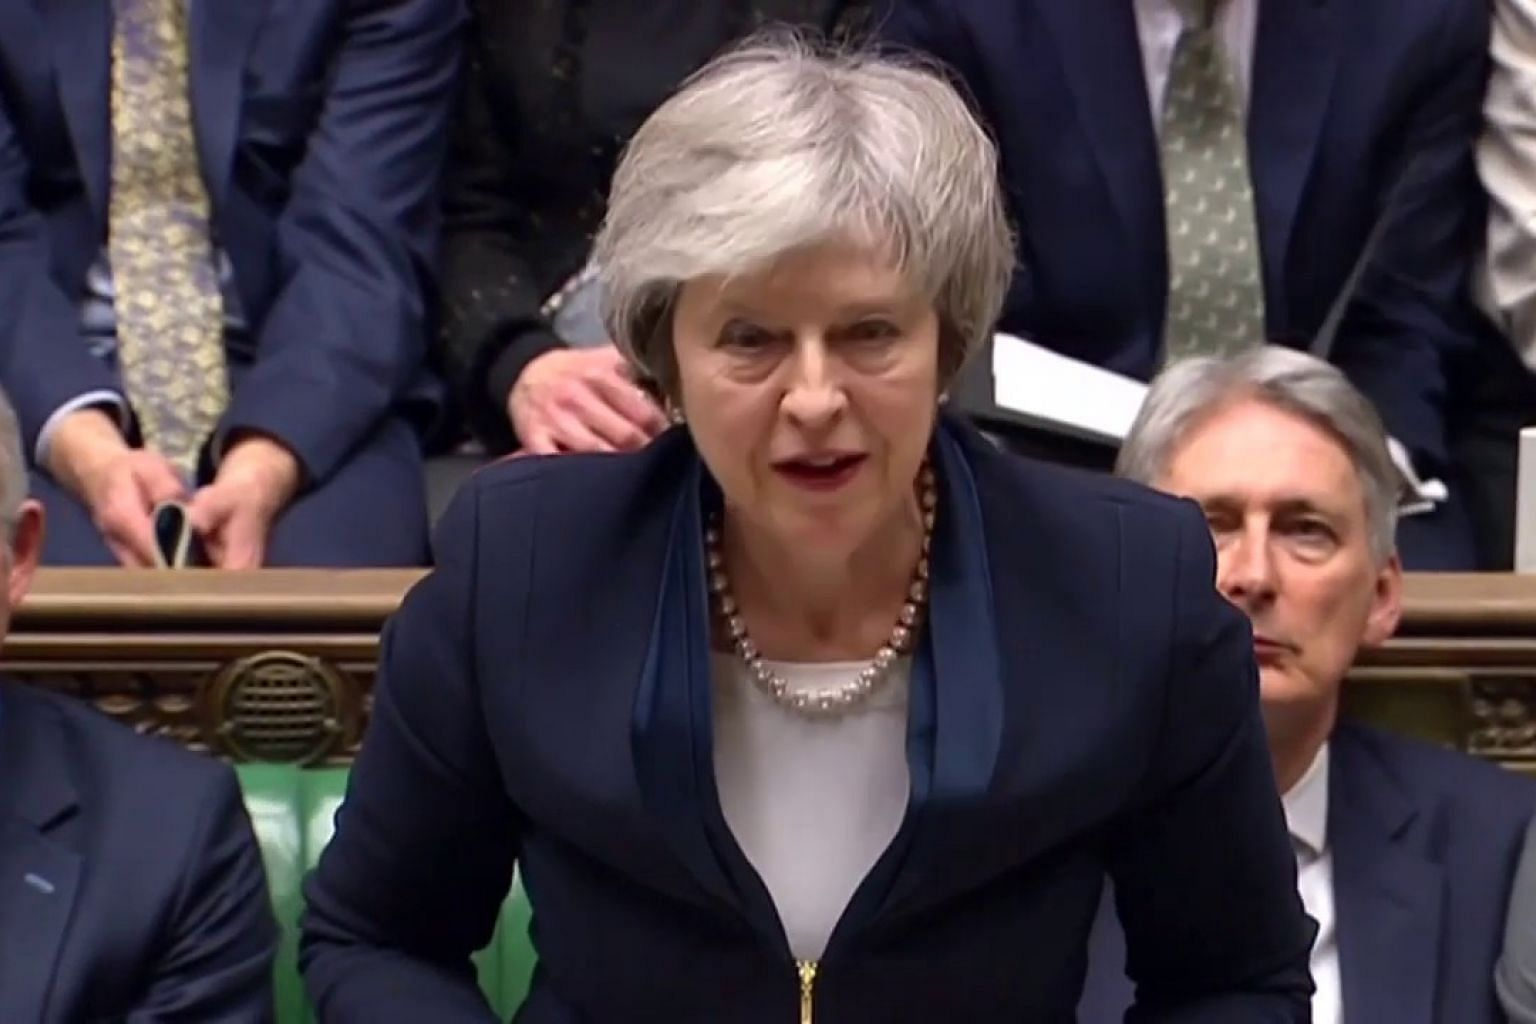 'The noes have it': Parliament votes down Brexit deal